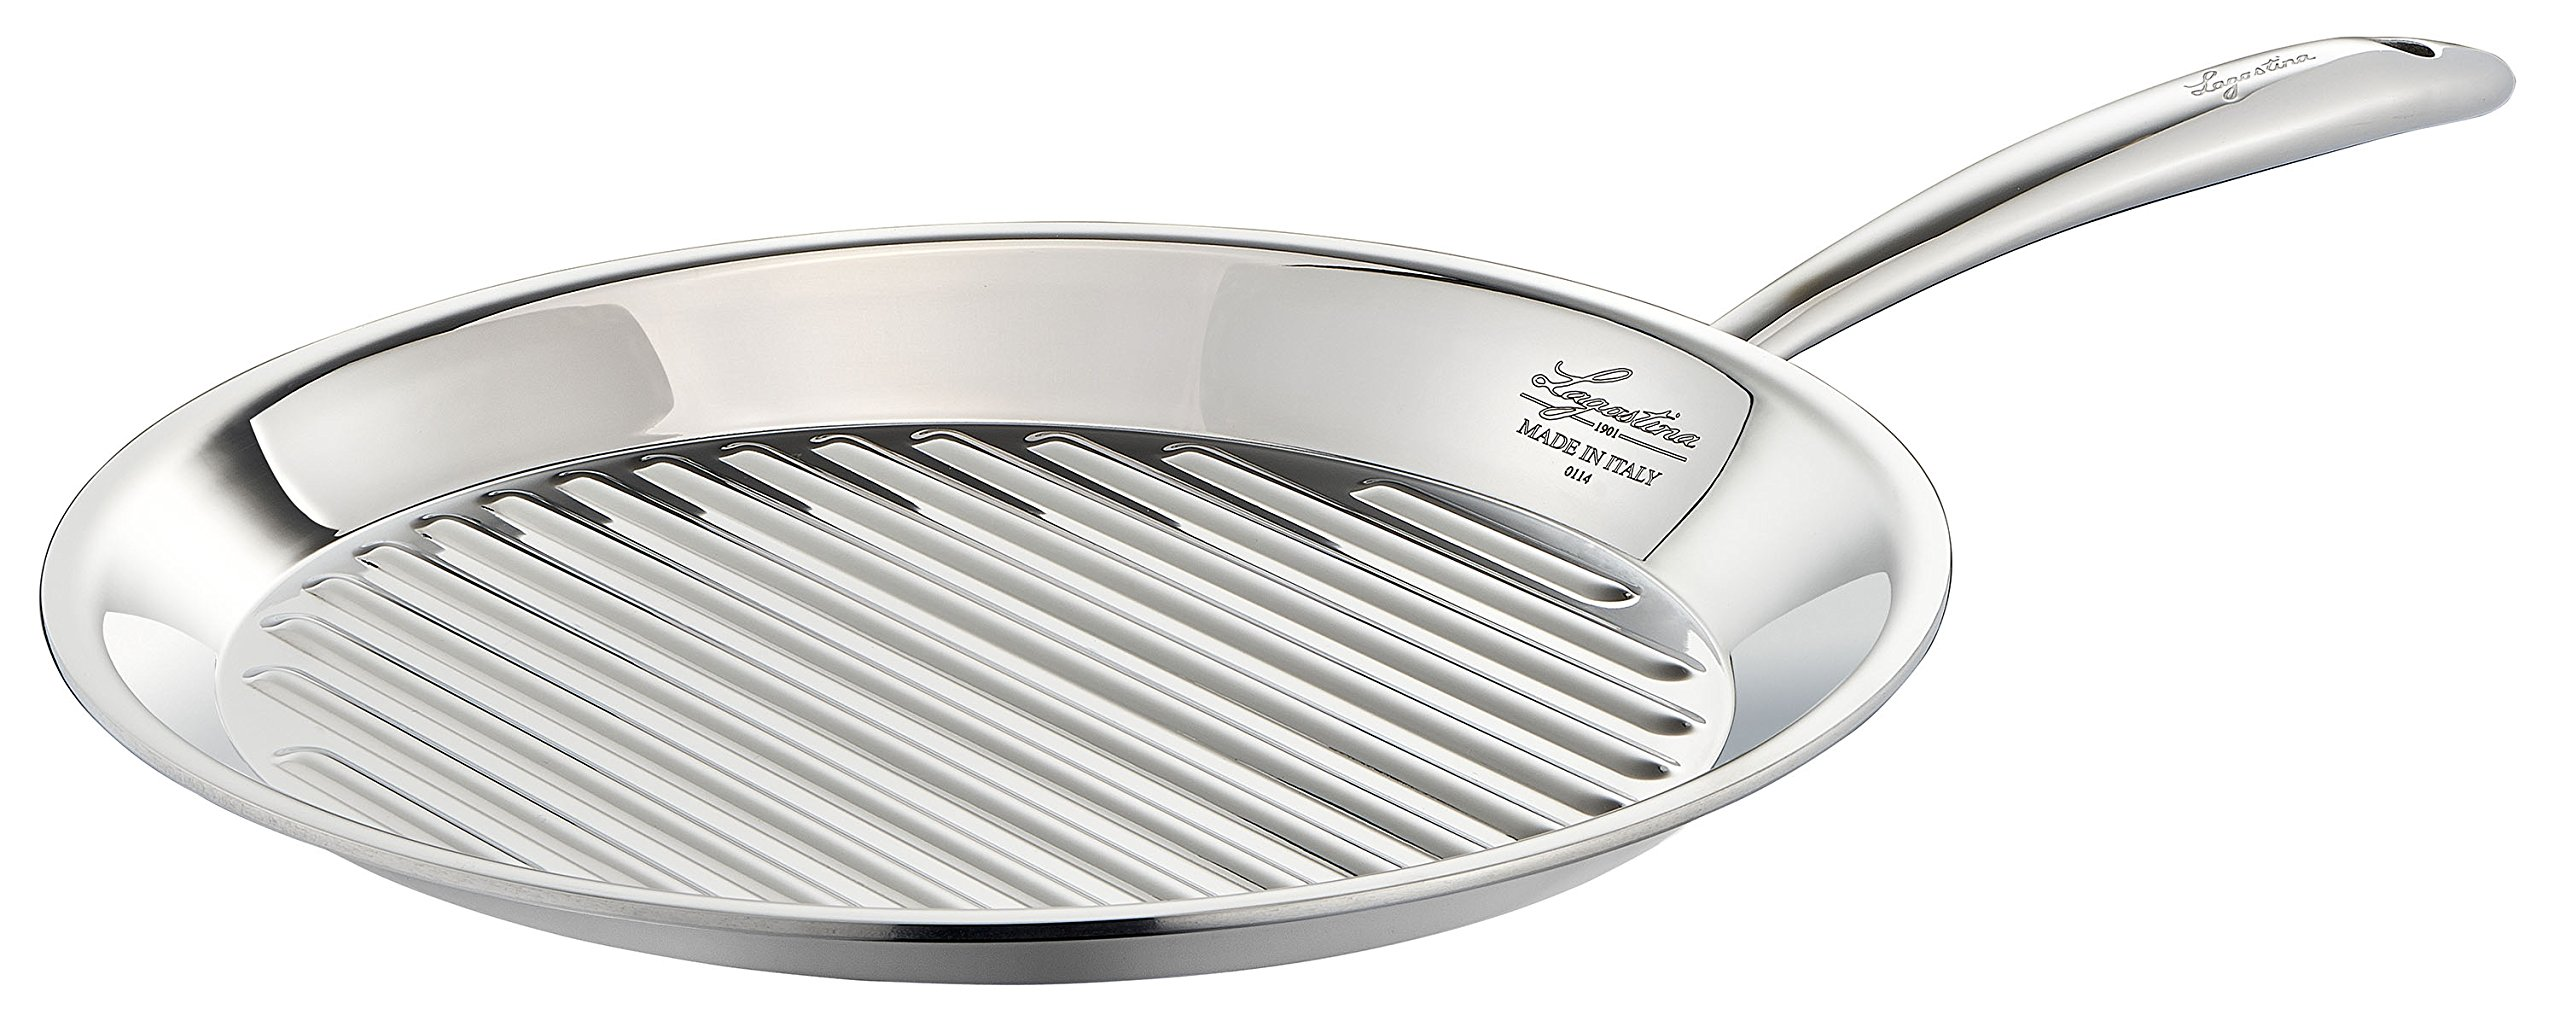 Lagostina Q5510474 Accademia Bistecchiera Stainless Steel Grill Pan Cookware, 11-Inch